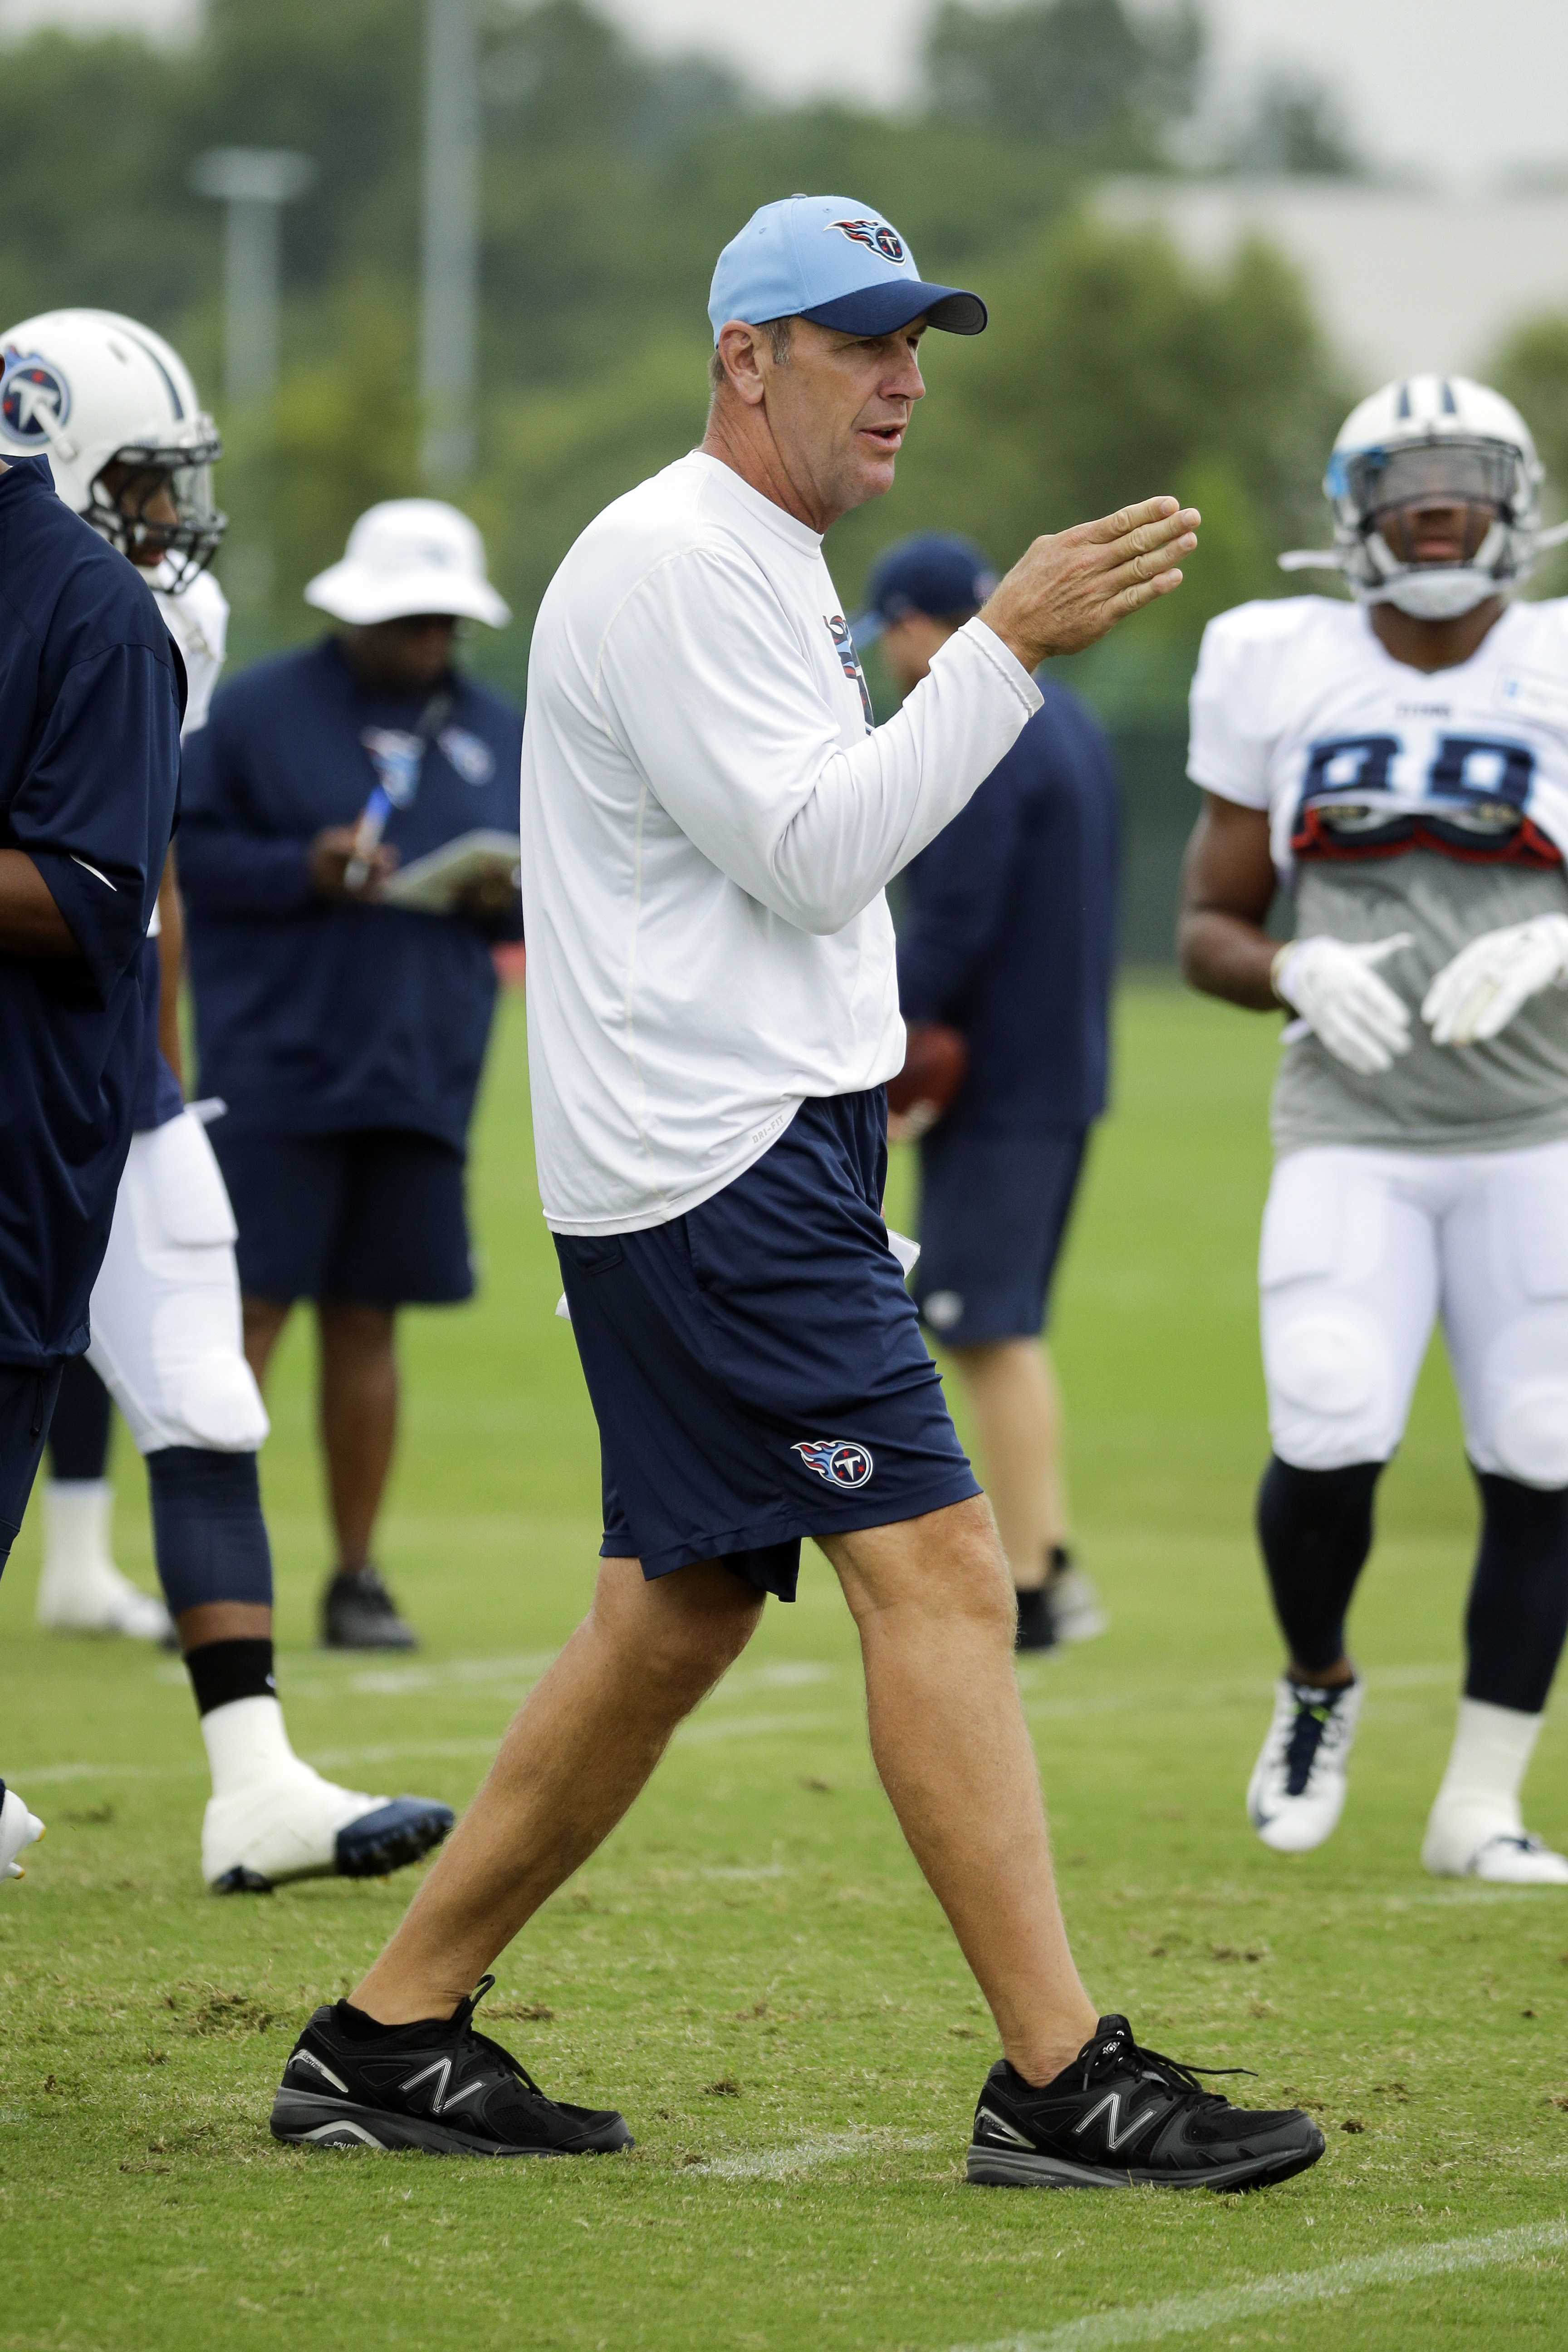 CORRECTS DATE TO 2015 - FILE - In this Aug. 7, 2015, file photo, Tennessee Titans assistant head coach for tight ends Mike Mularkey directs his players during NFL football training camp in Nashville, Tenn. The Titans have fired head coach Ken Whisenhunt a